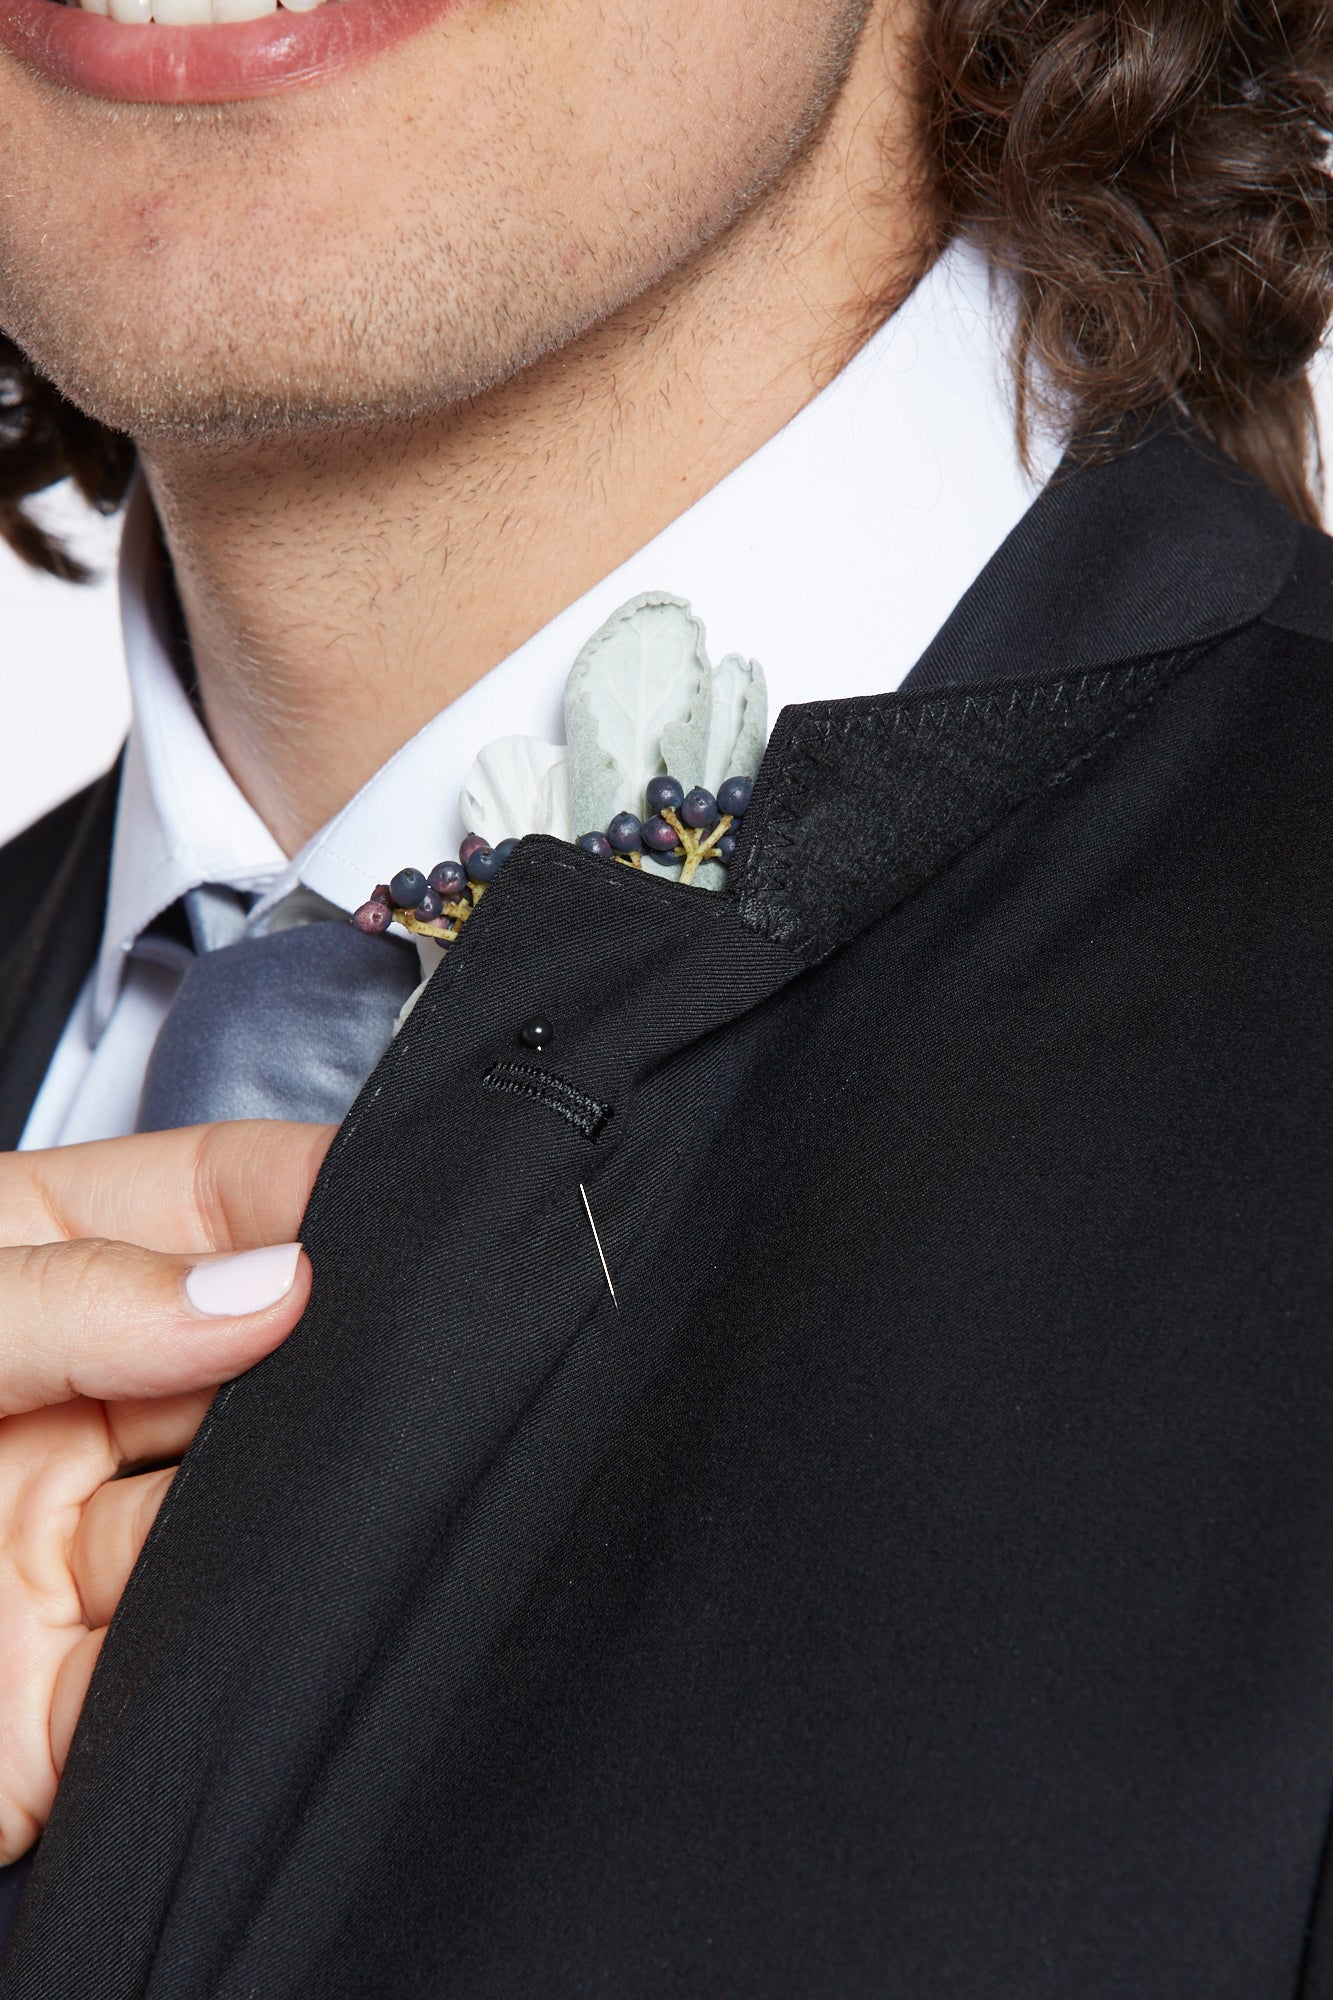 ow to pin a boutonniere_Step Three